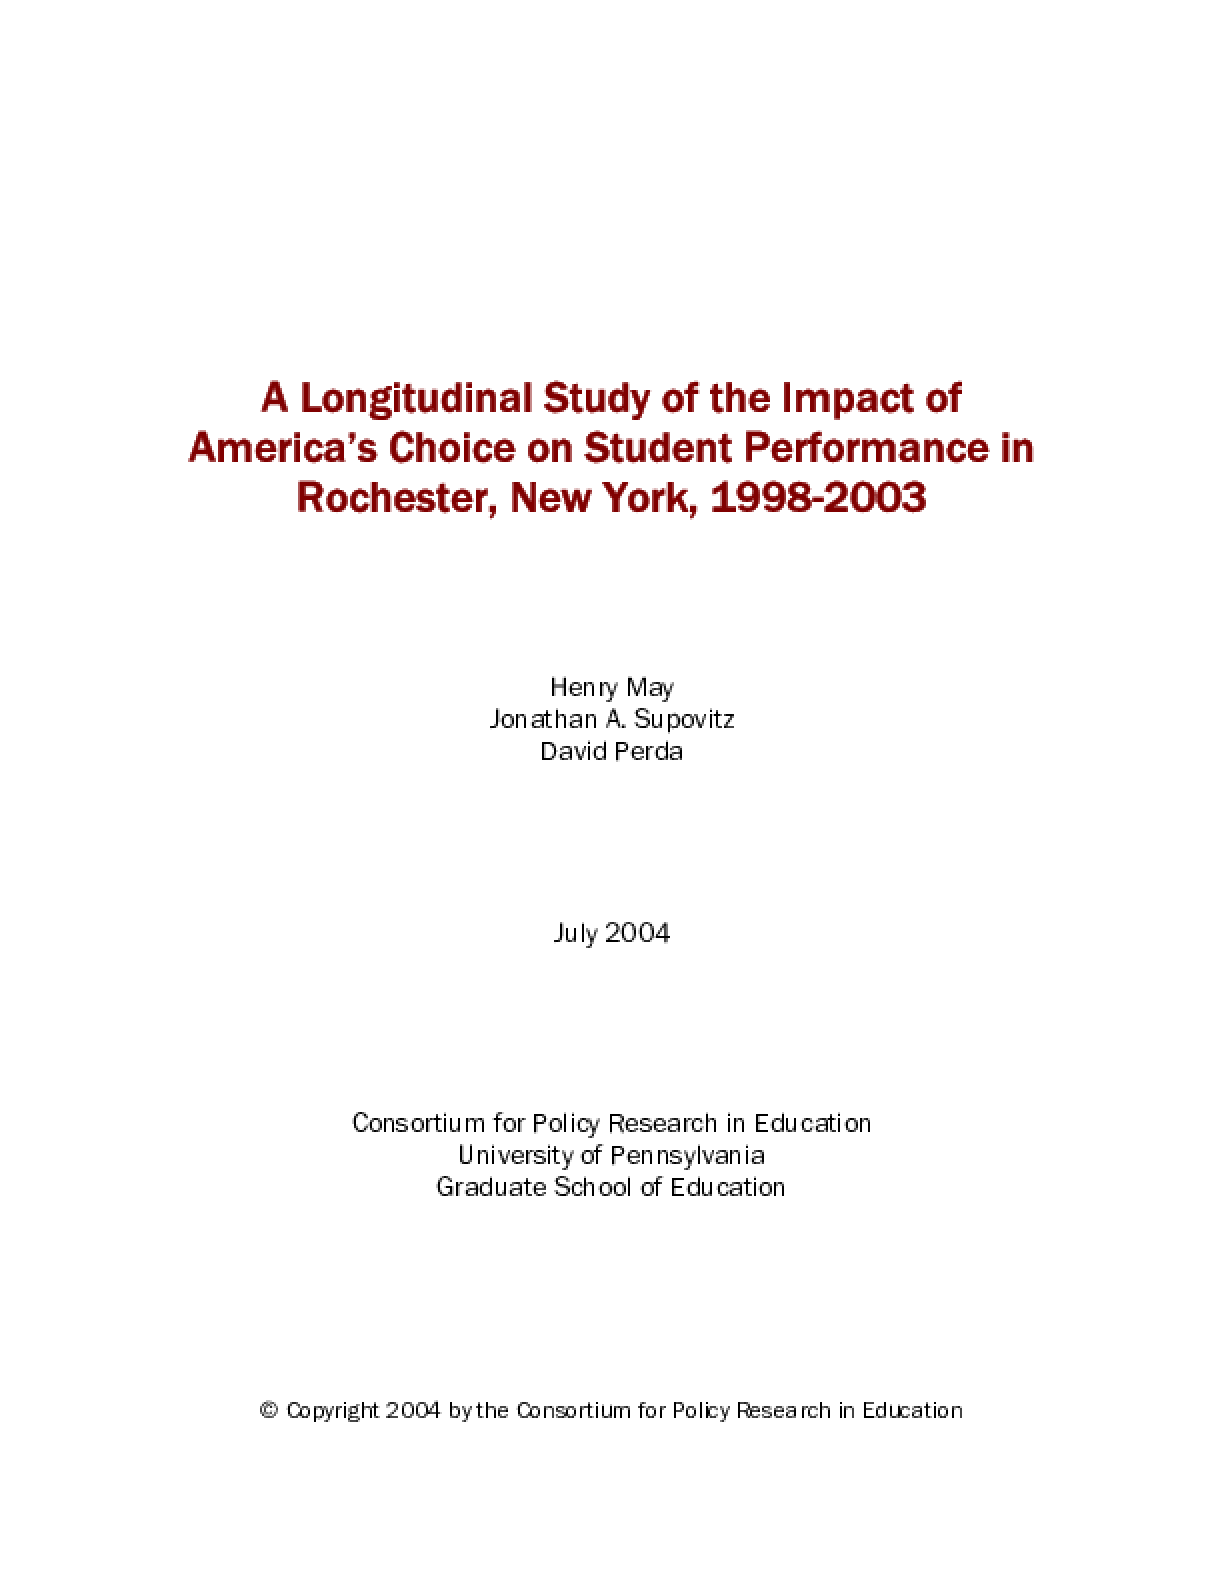 A Longitudinal Study of the Impact of America's Choice on Student Performance in Rochester, New York, 1998-2003